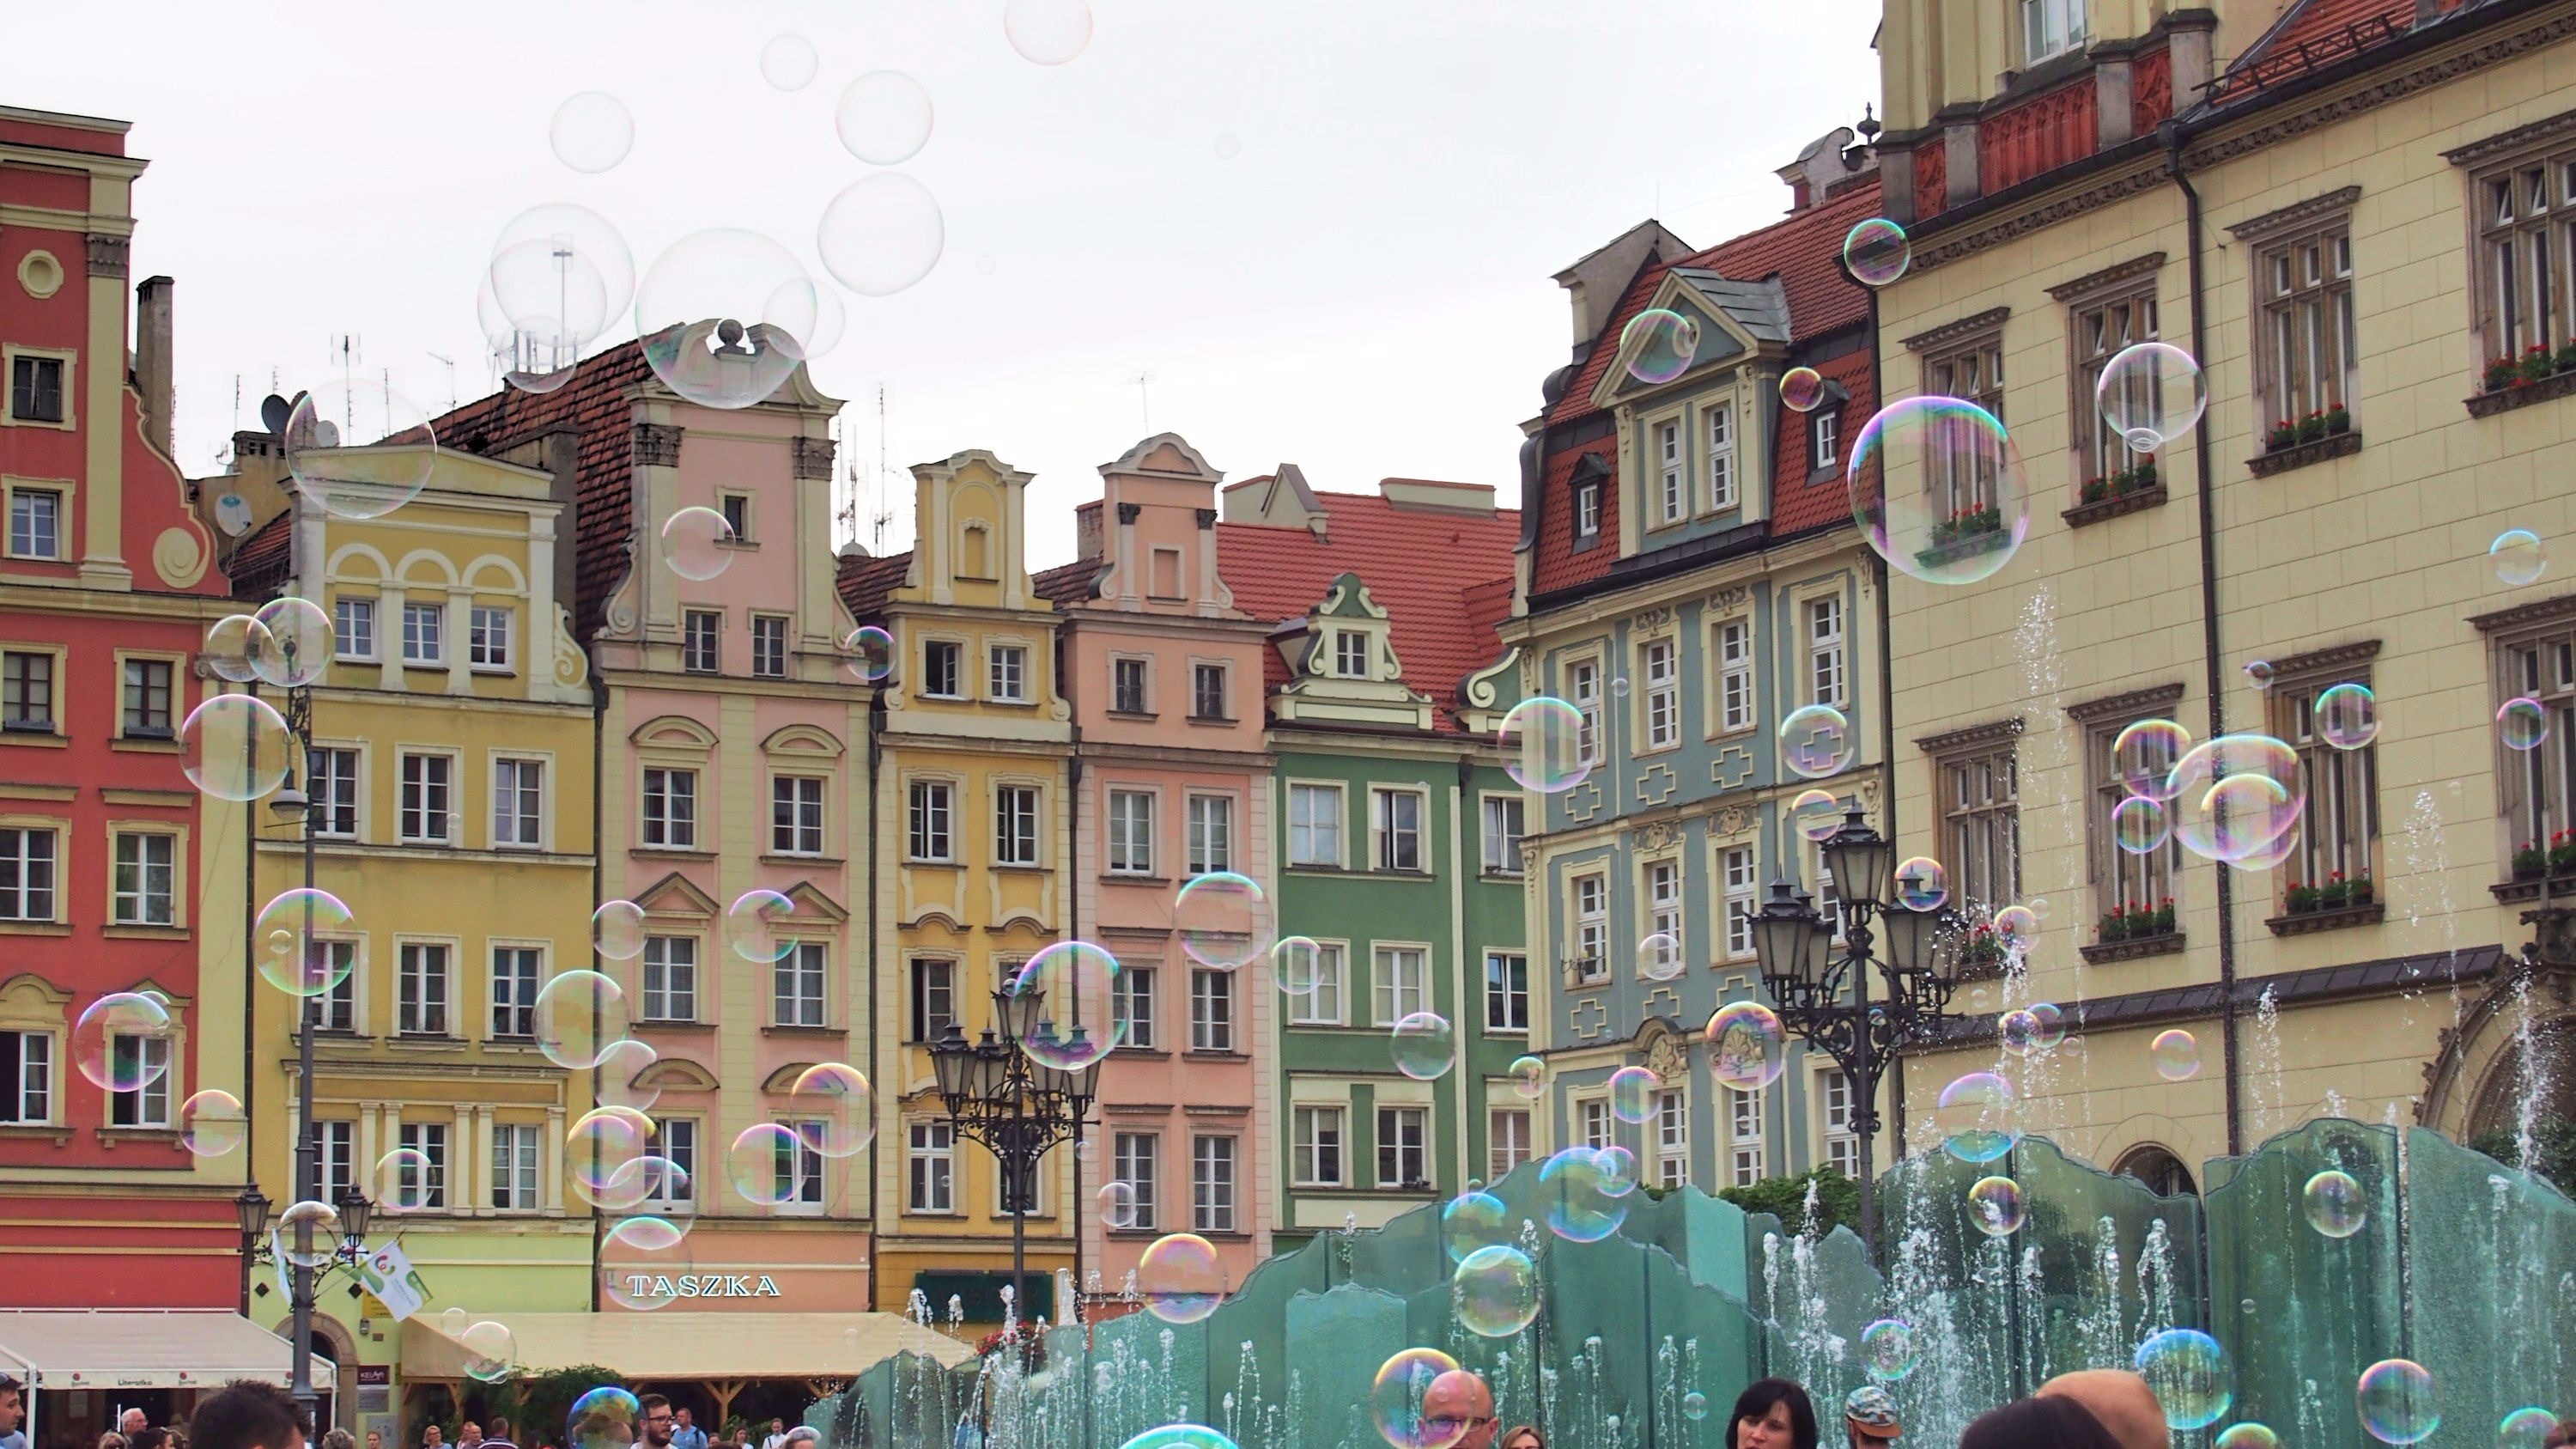 22 Photos That Will Make You Want To Visit Wroclaw, Poland